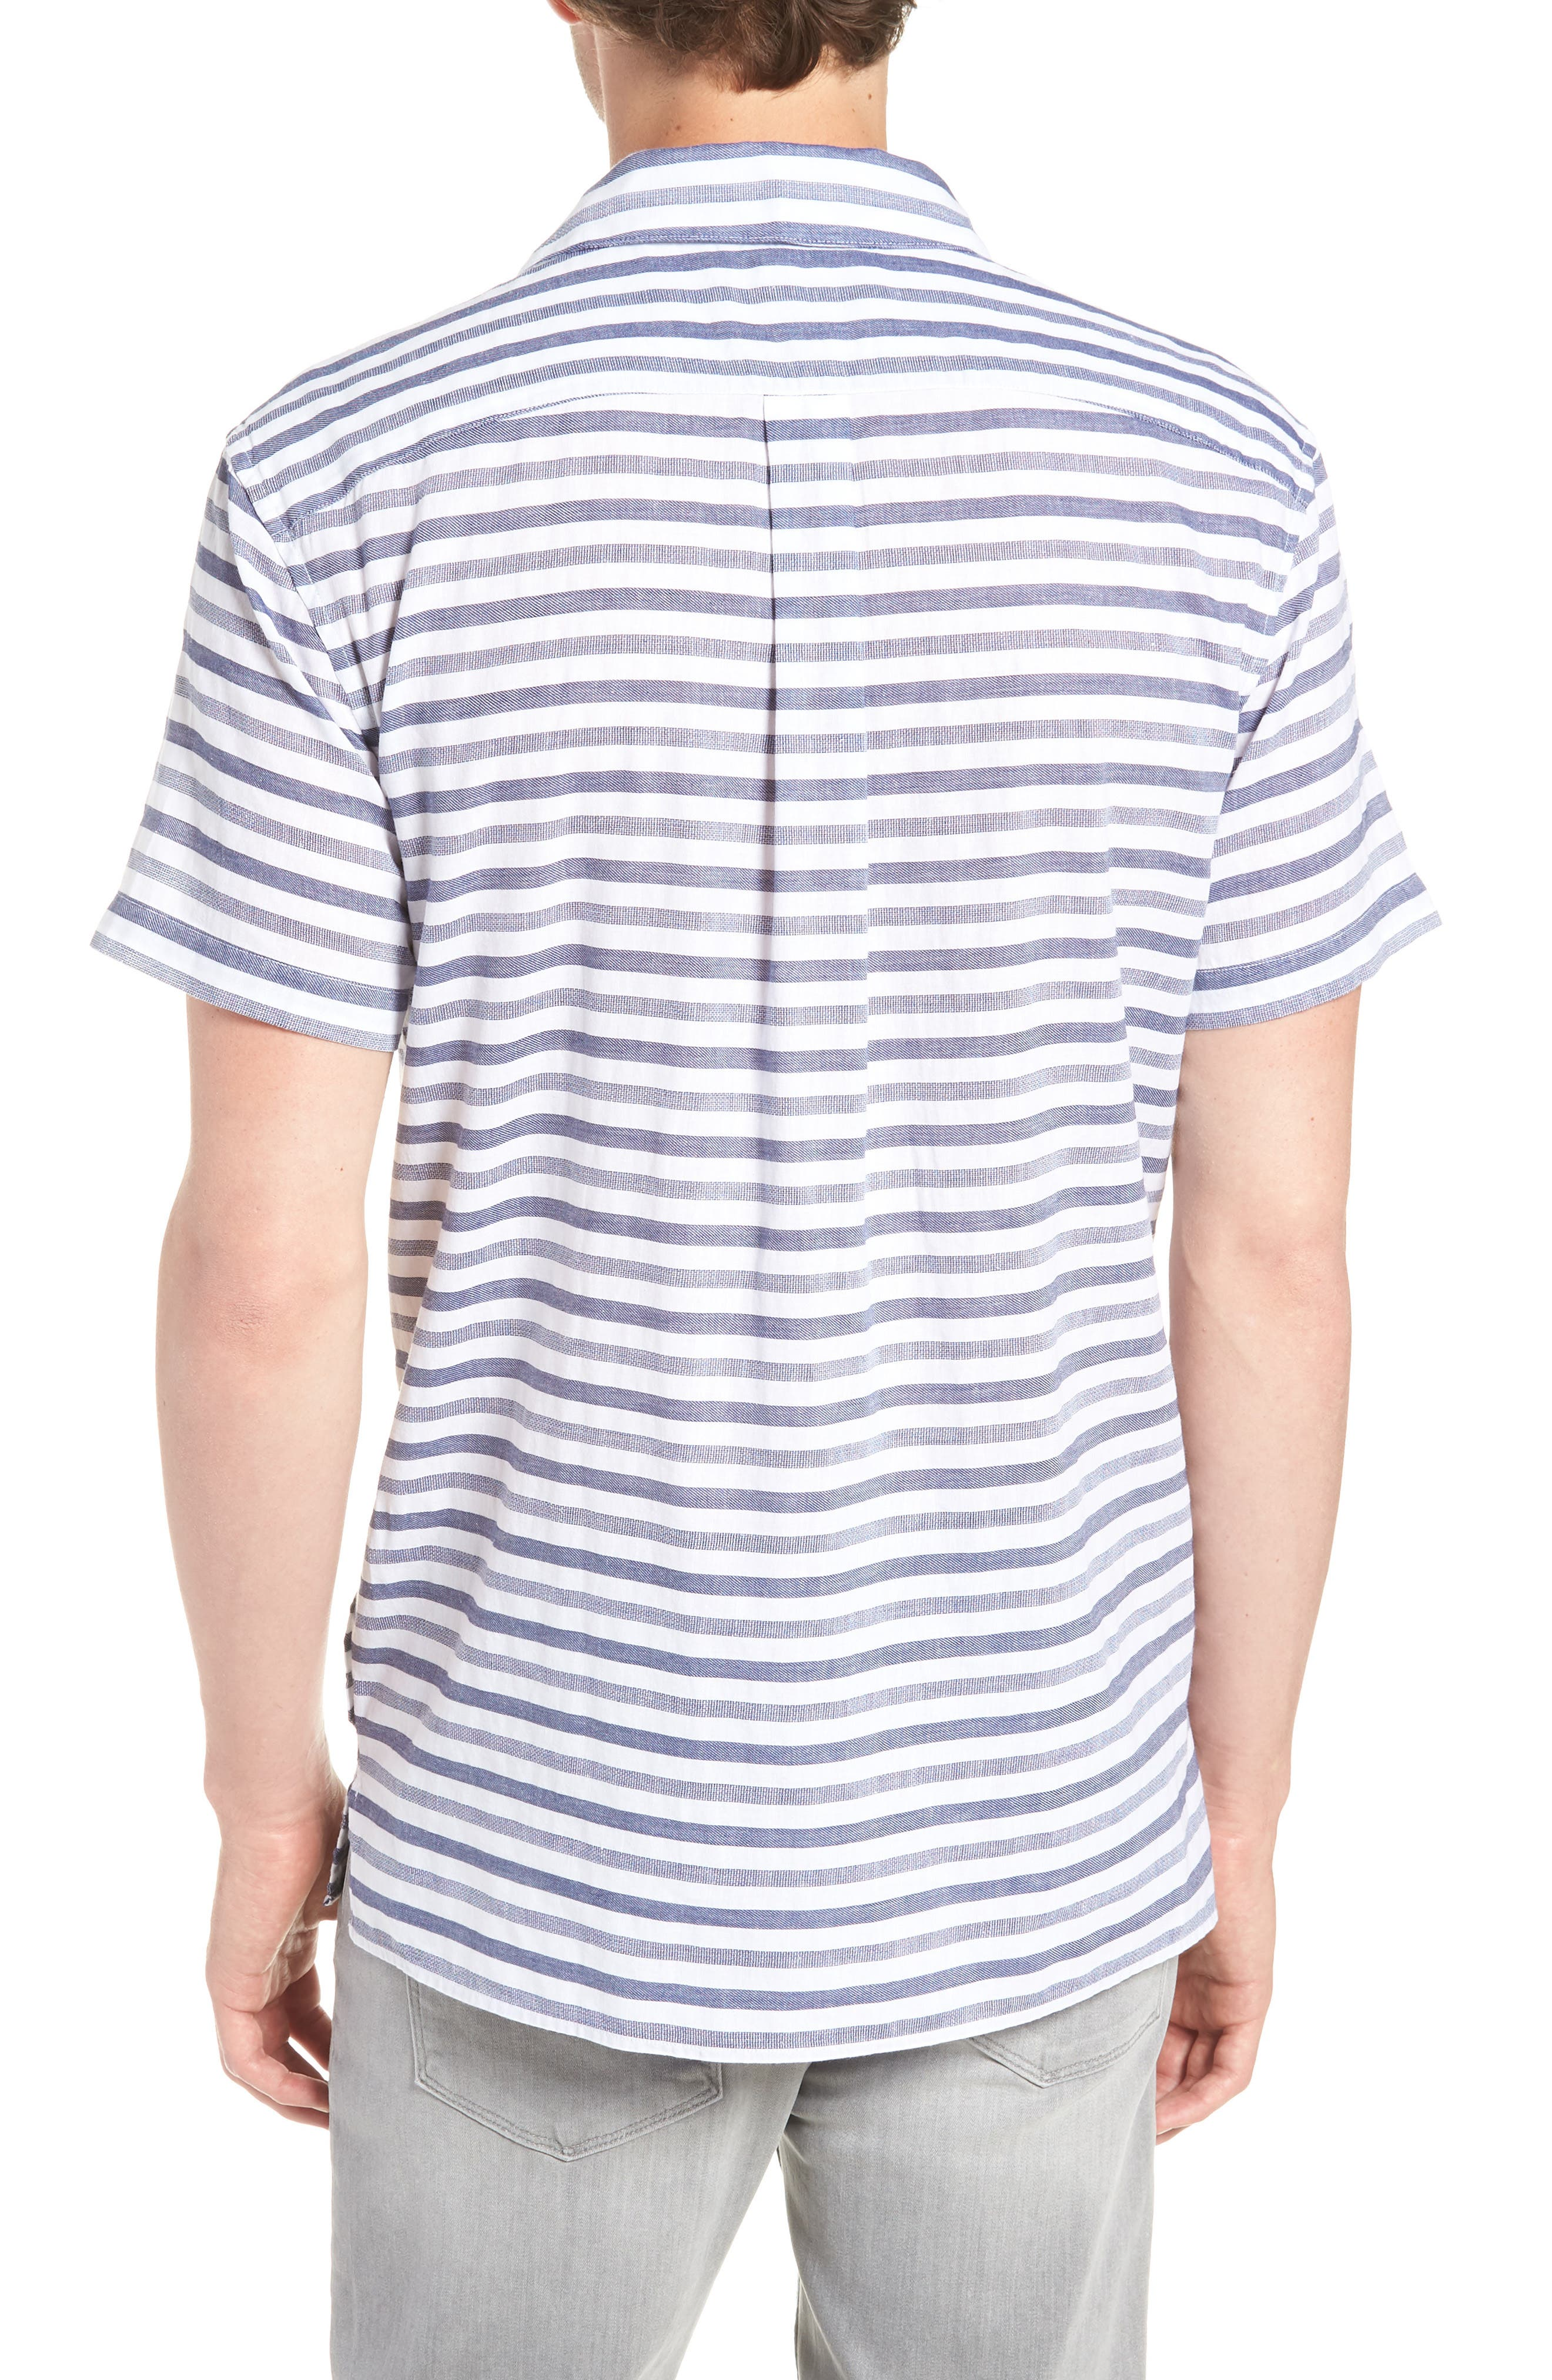 Beach Slim Fit Stripe Cotton & Linen Shirt,                             Alternate thumbnail 3, color,                             100